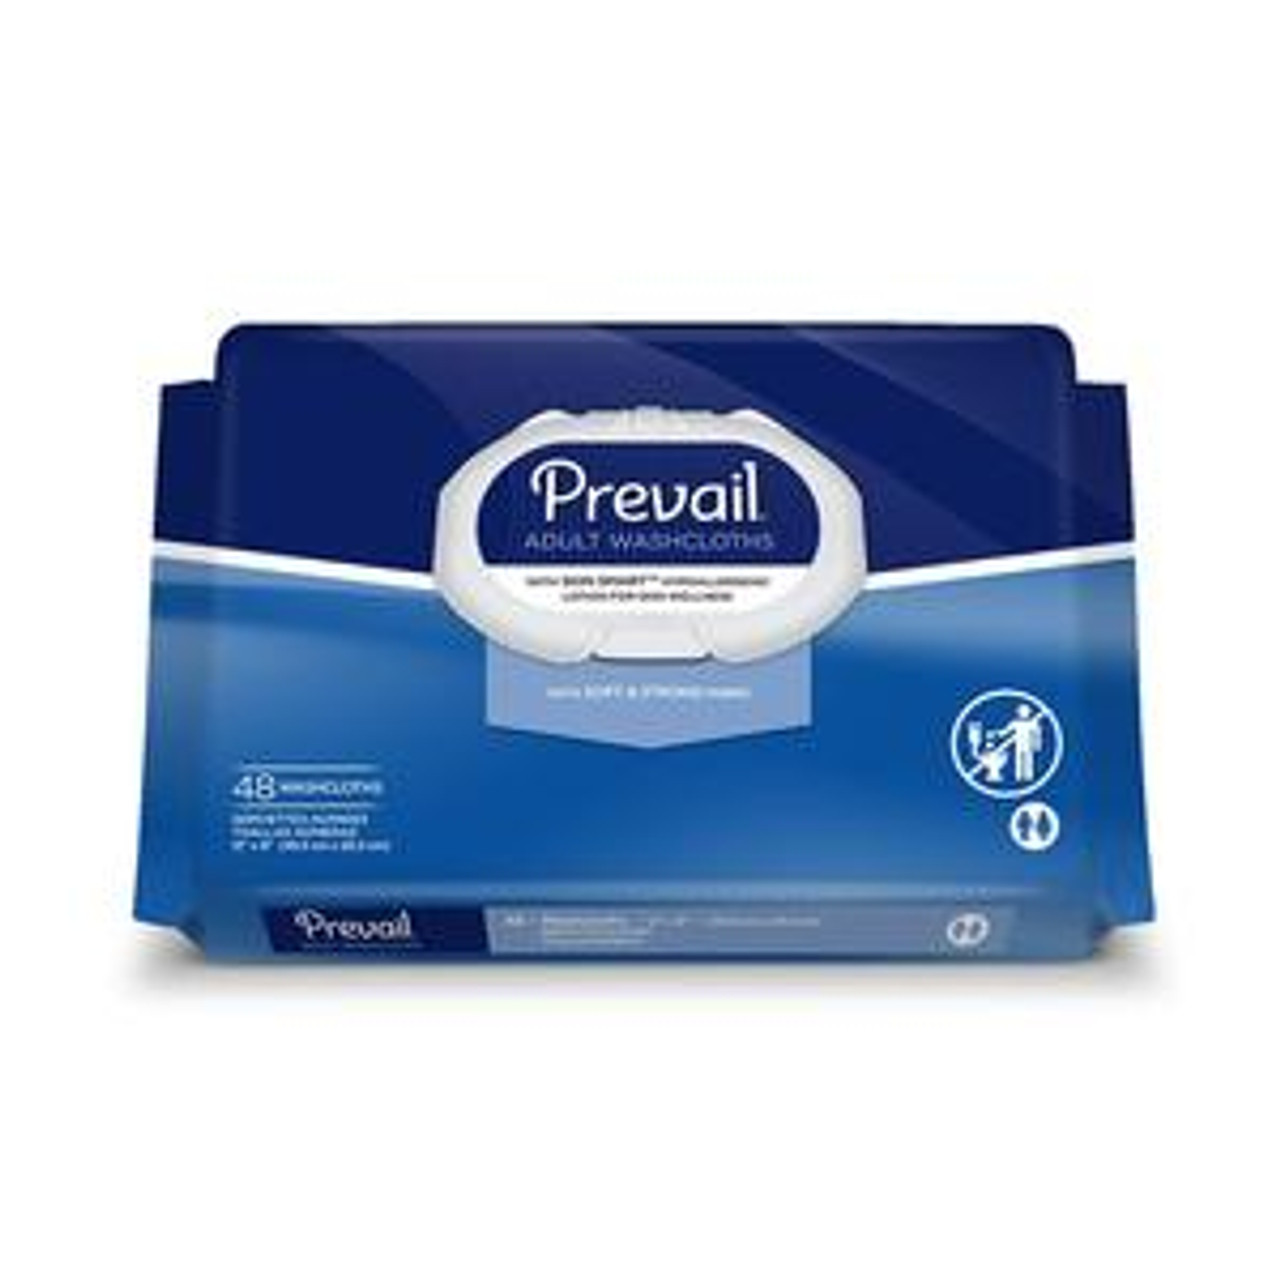 Prevail® Disposable Adult Washcloth with Press-n-Pull Lid